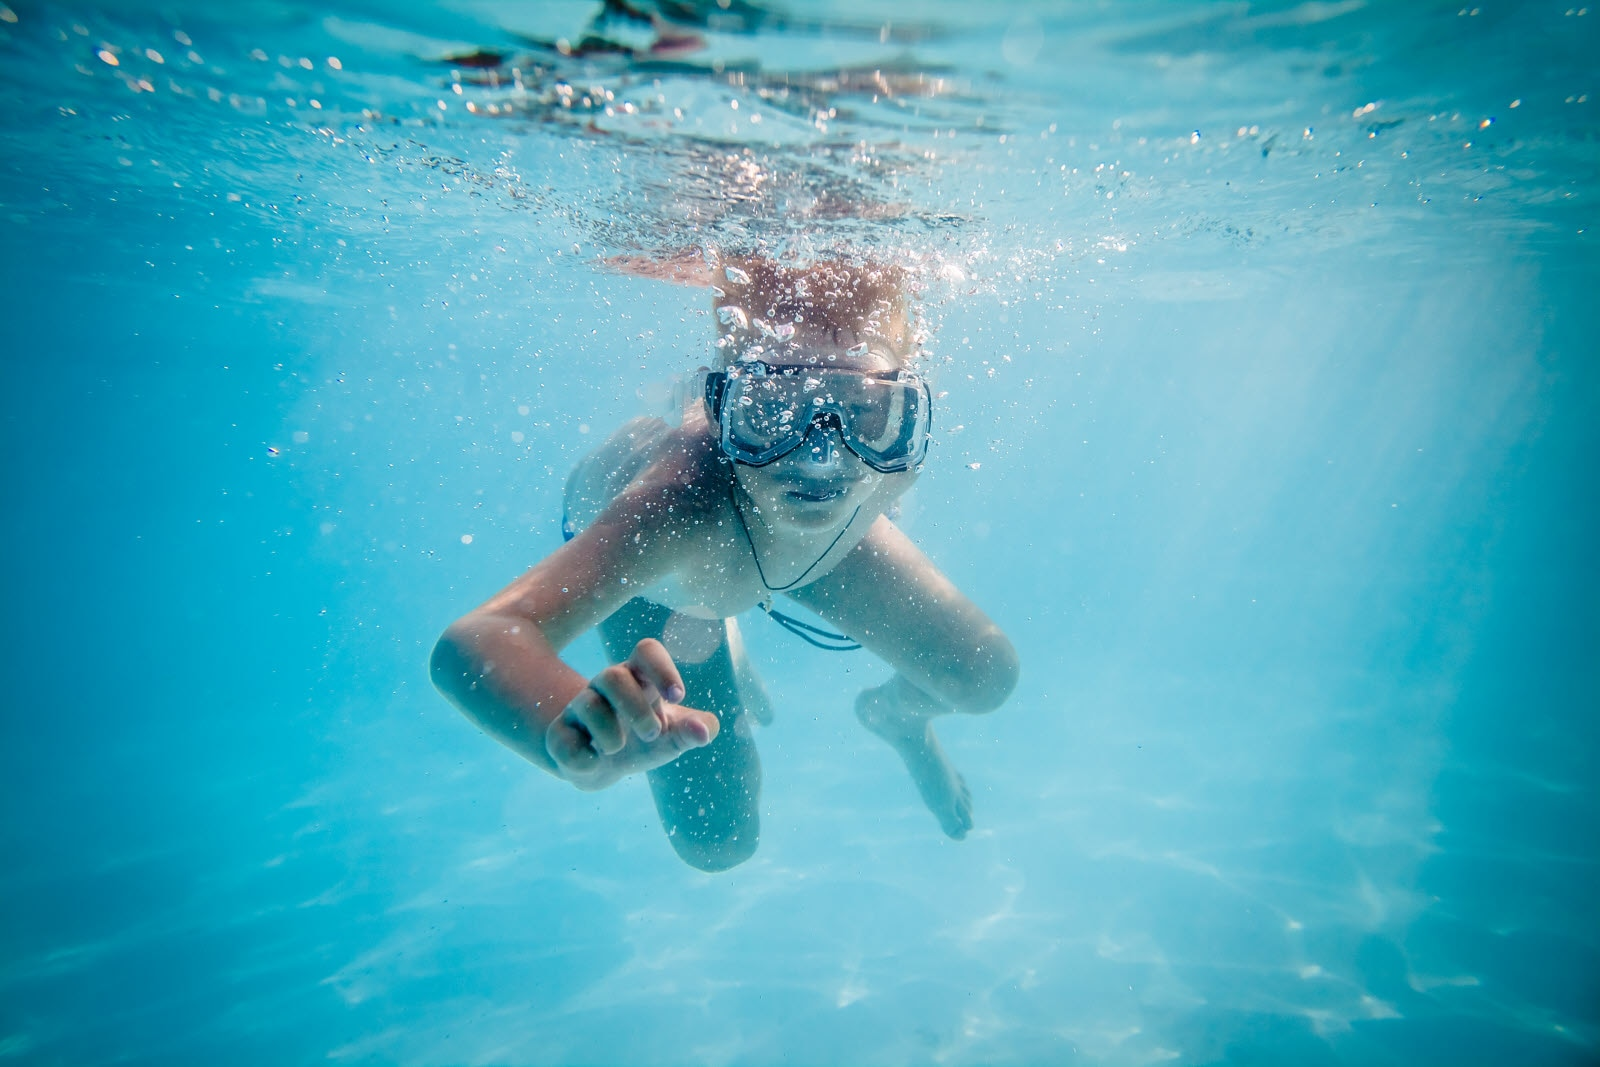 Boy swimming under water in pool